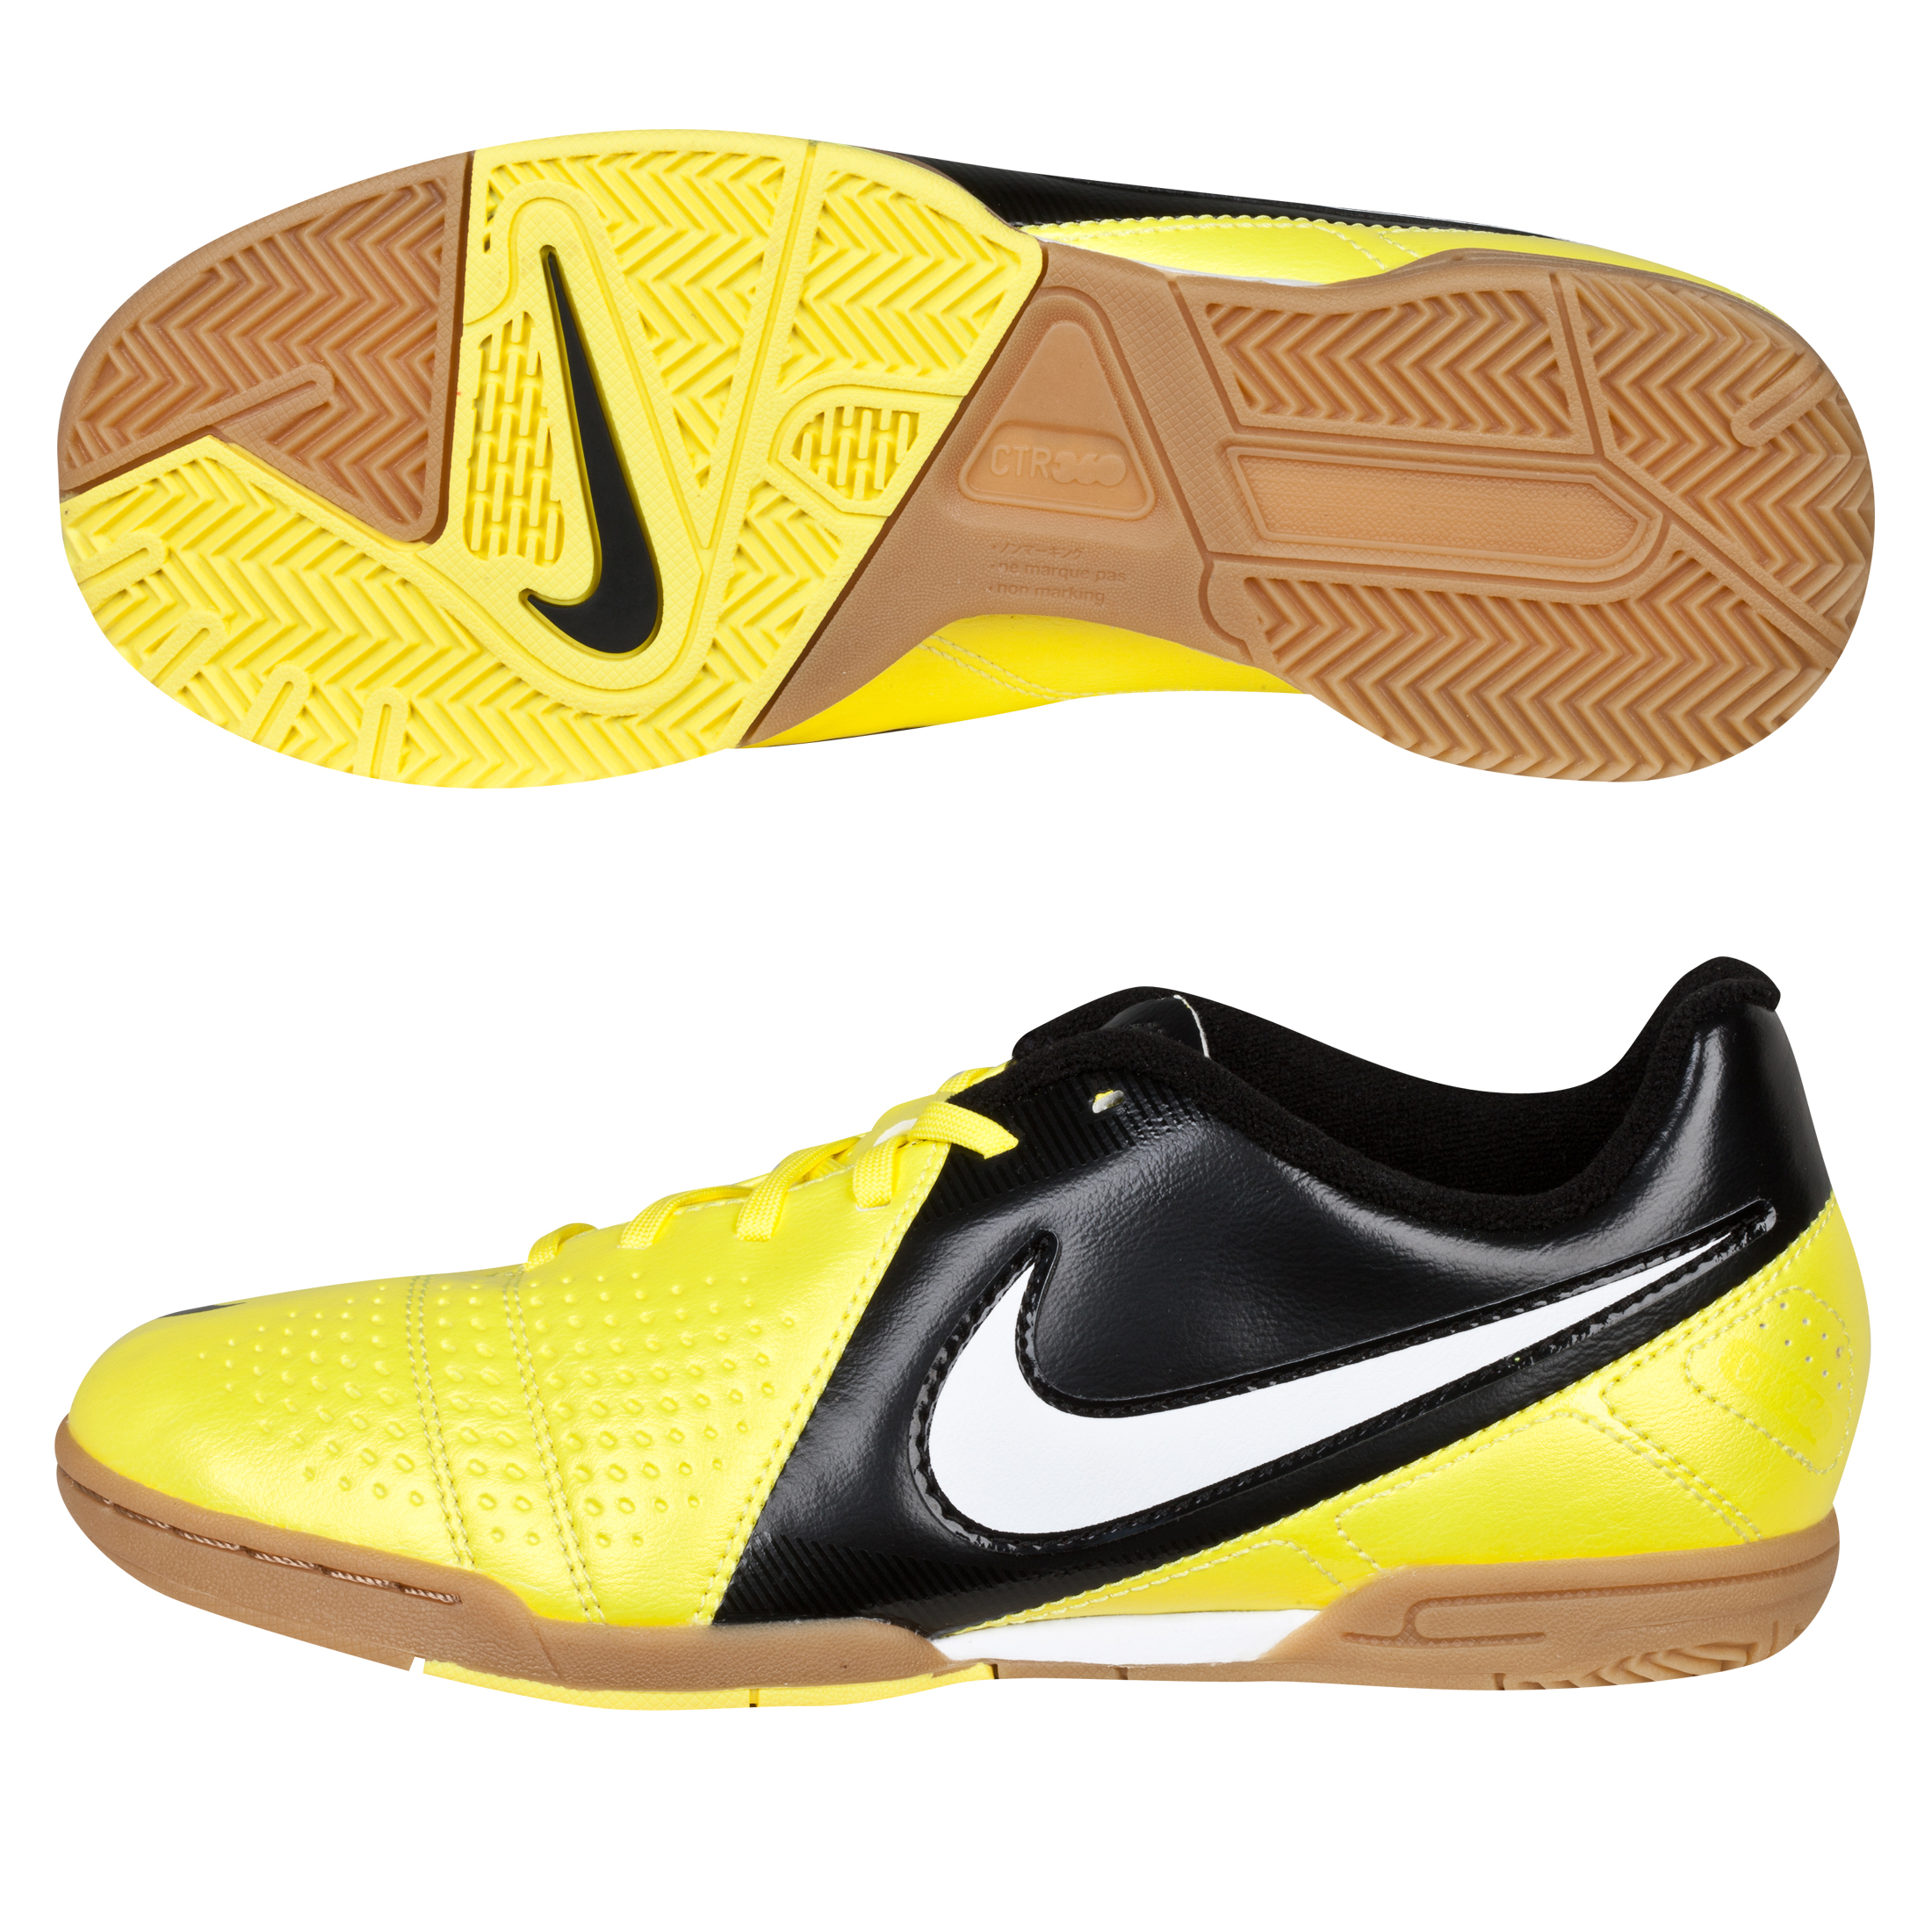 Nike CTR360 Libretto III Trainers - Sonic Yellow/White/Black - Kids